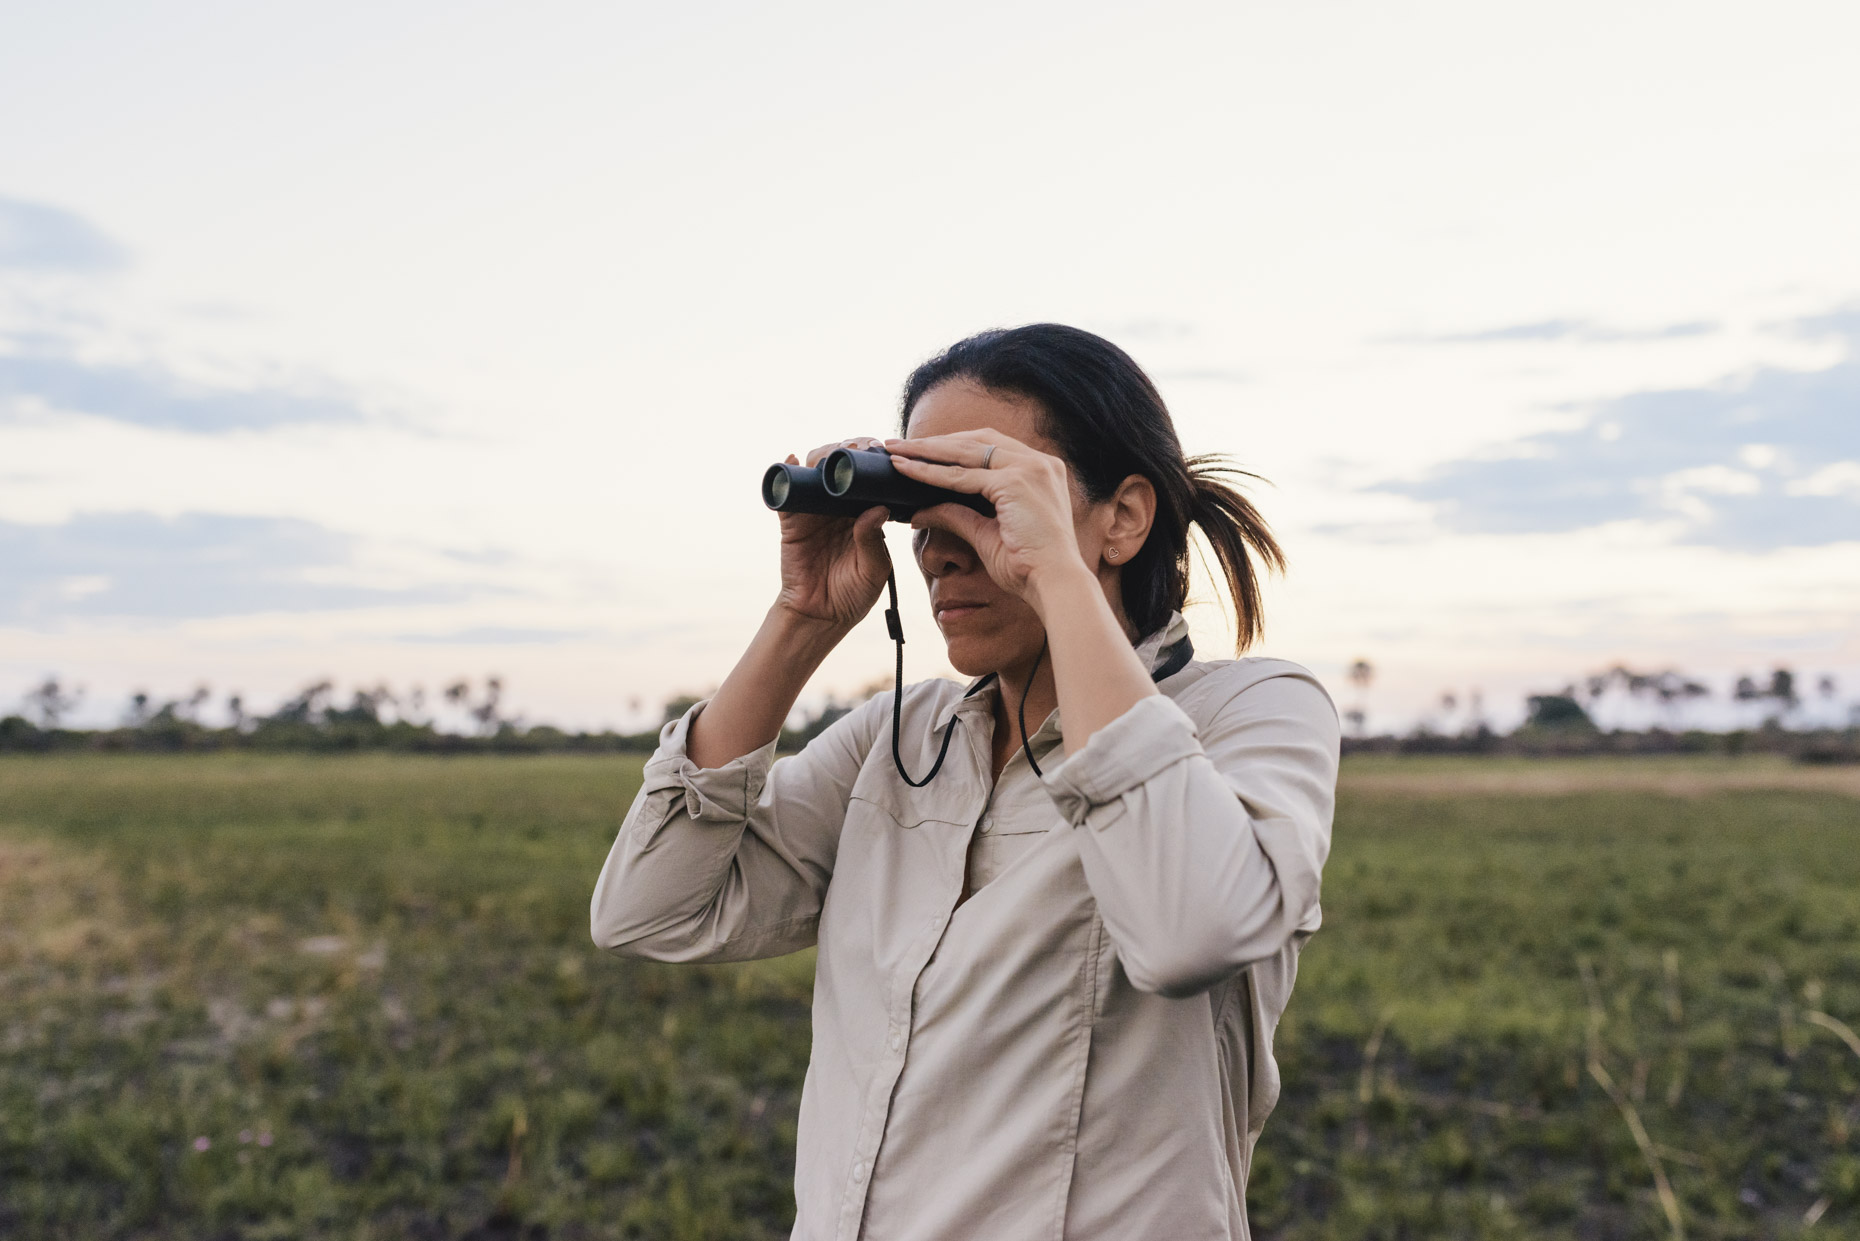 Woman animal watching in Leica binoculars on African safari